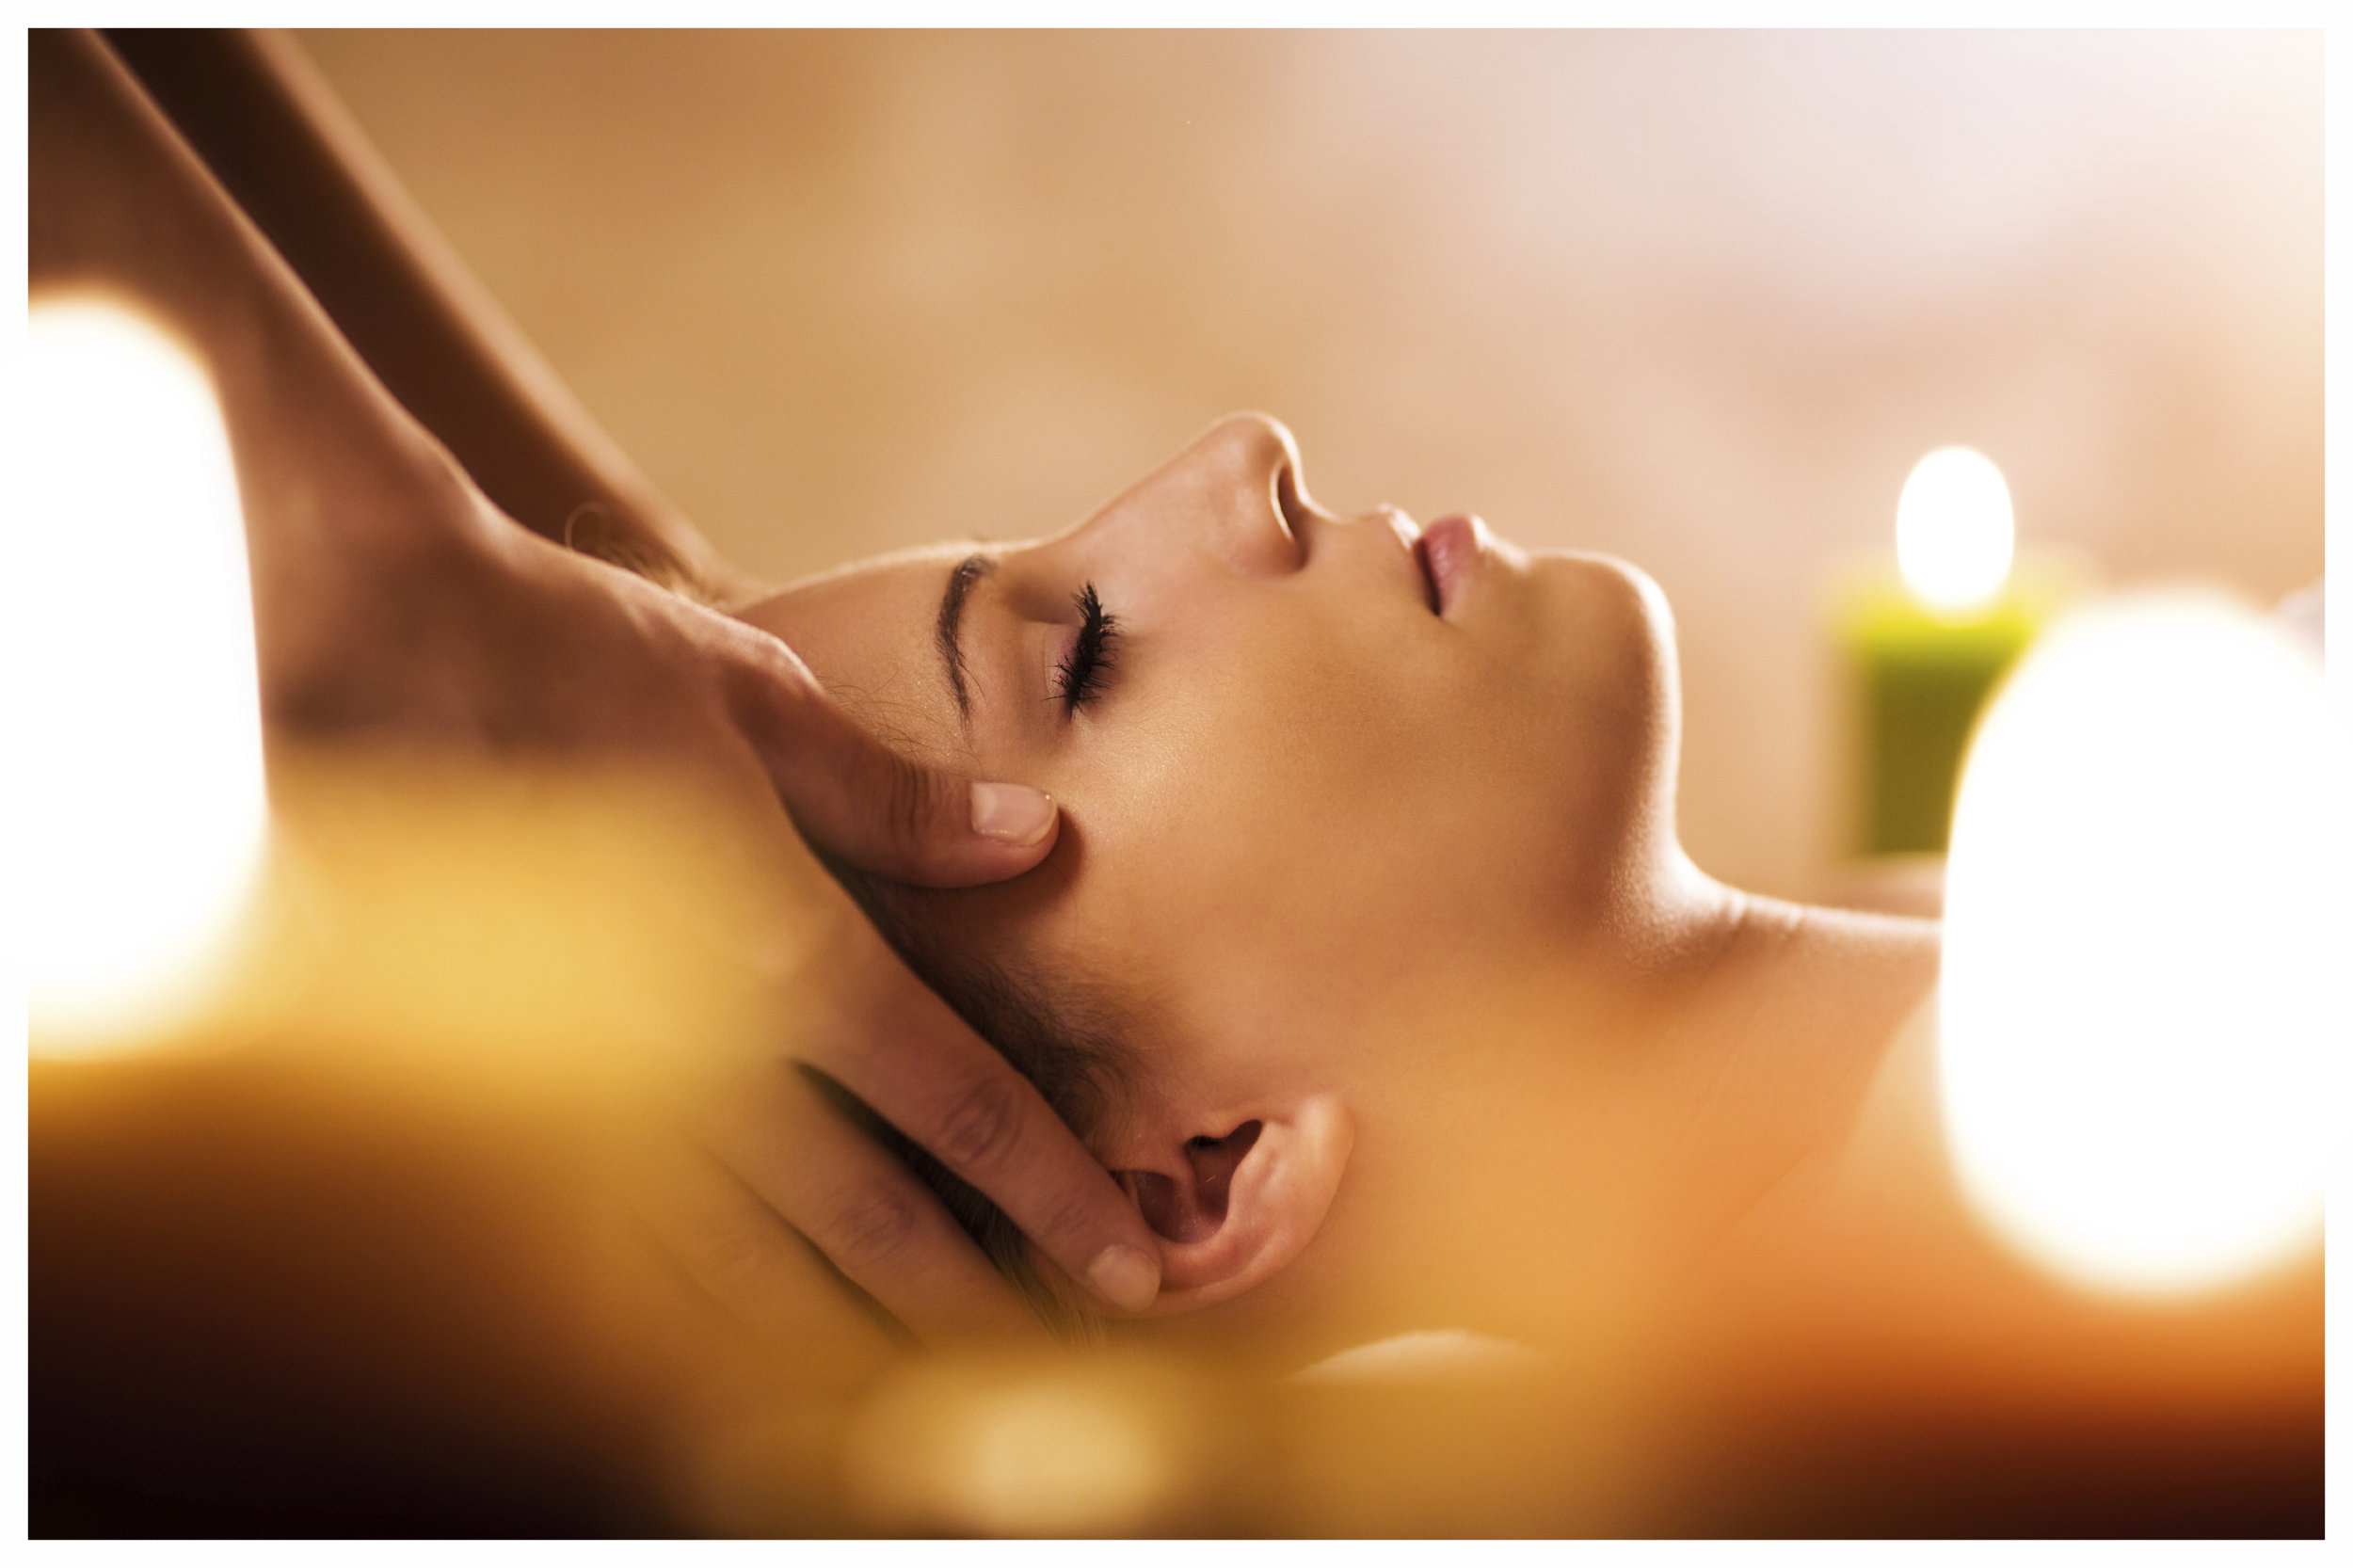 Facials are cleansing, detoxifying and a fountain of youth. Massage facials enhance your experience and deepens your treatment.